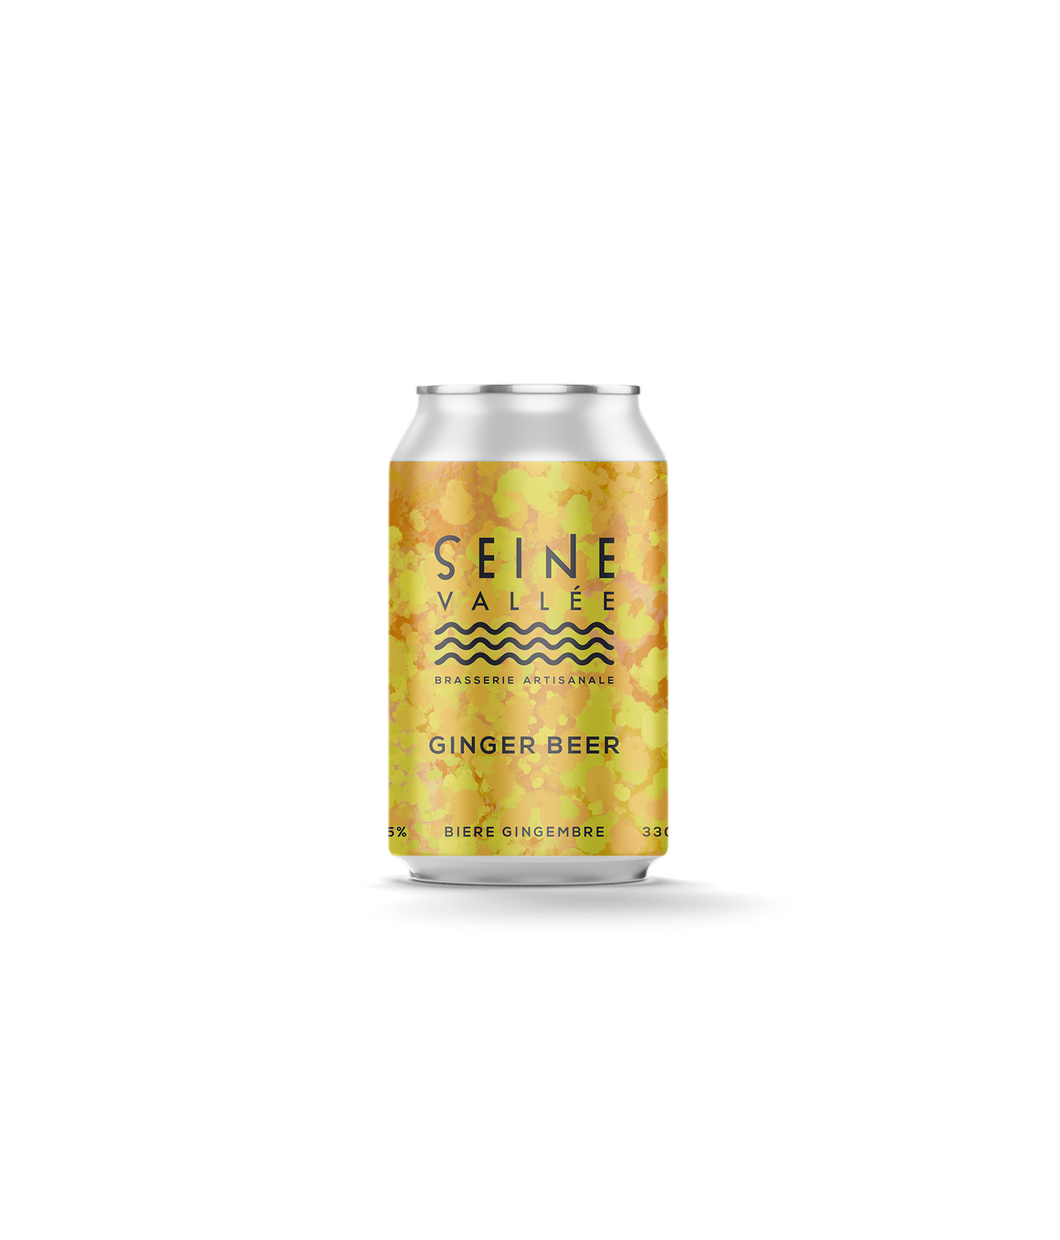 Ginger Beer - Biere Gingembre (12/24) Pack